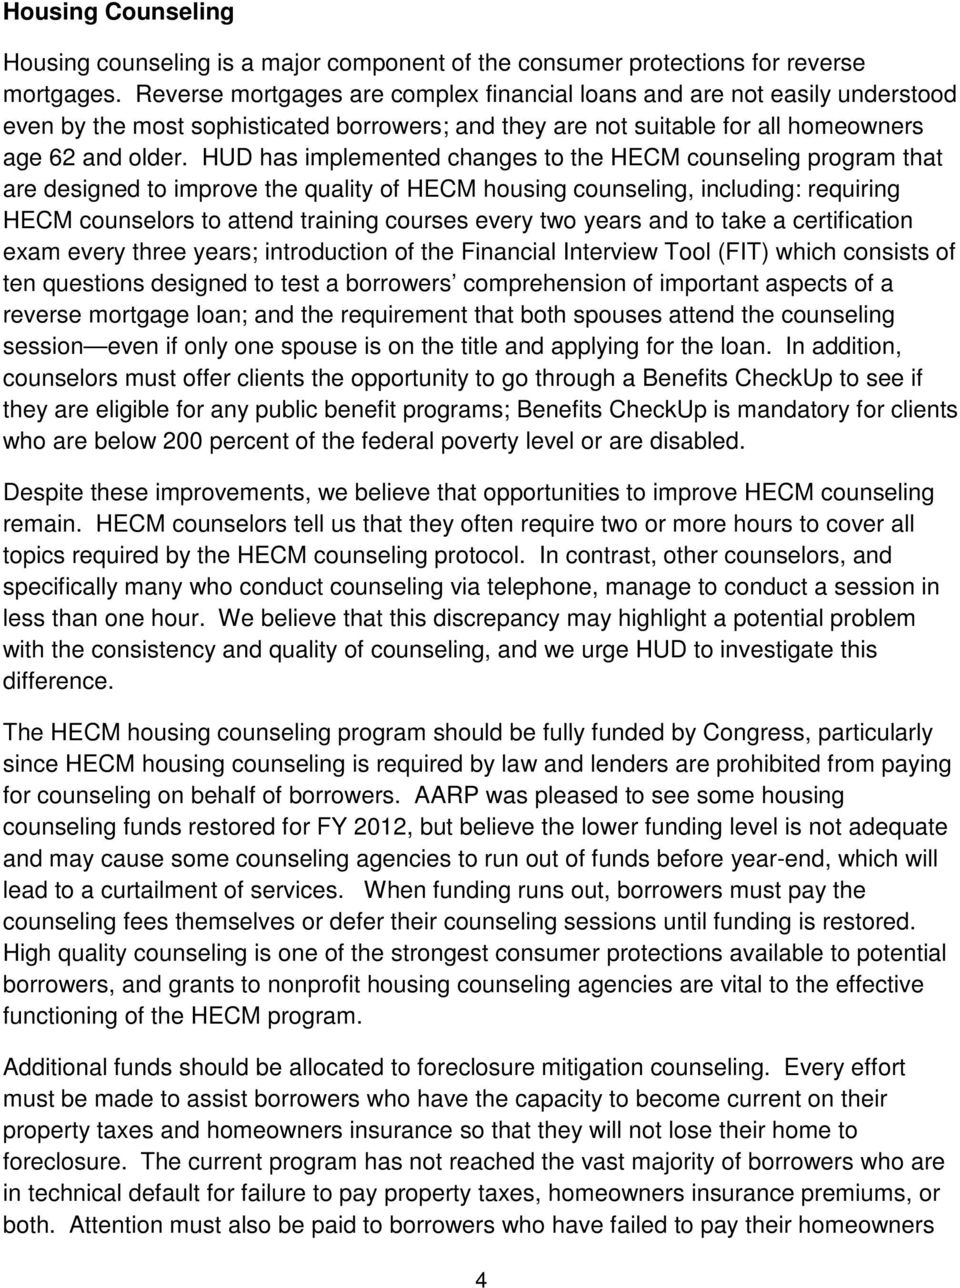 HUD has implemented changes to the HECM counseling program that are designed to improve the quality of HECM housing counseling, including: requiring HECM counselors to attend training courses every